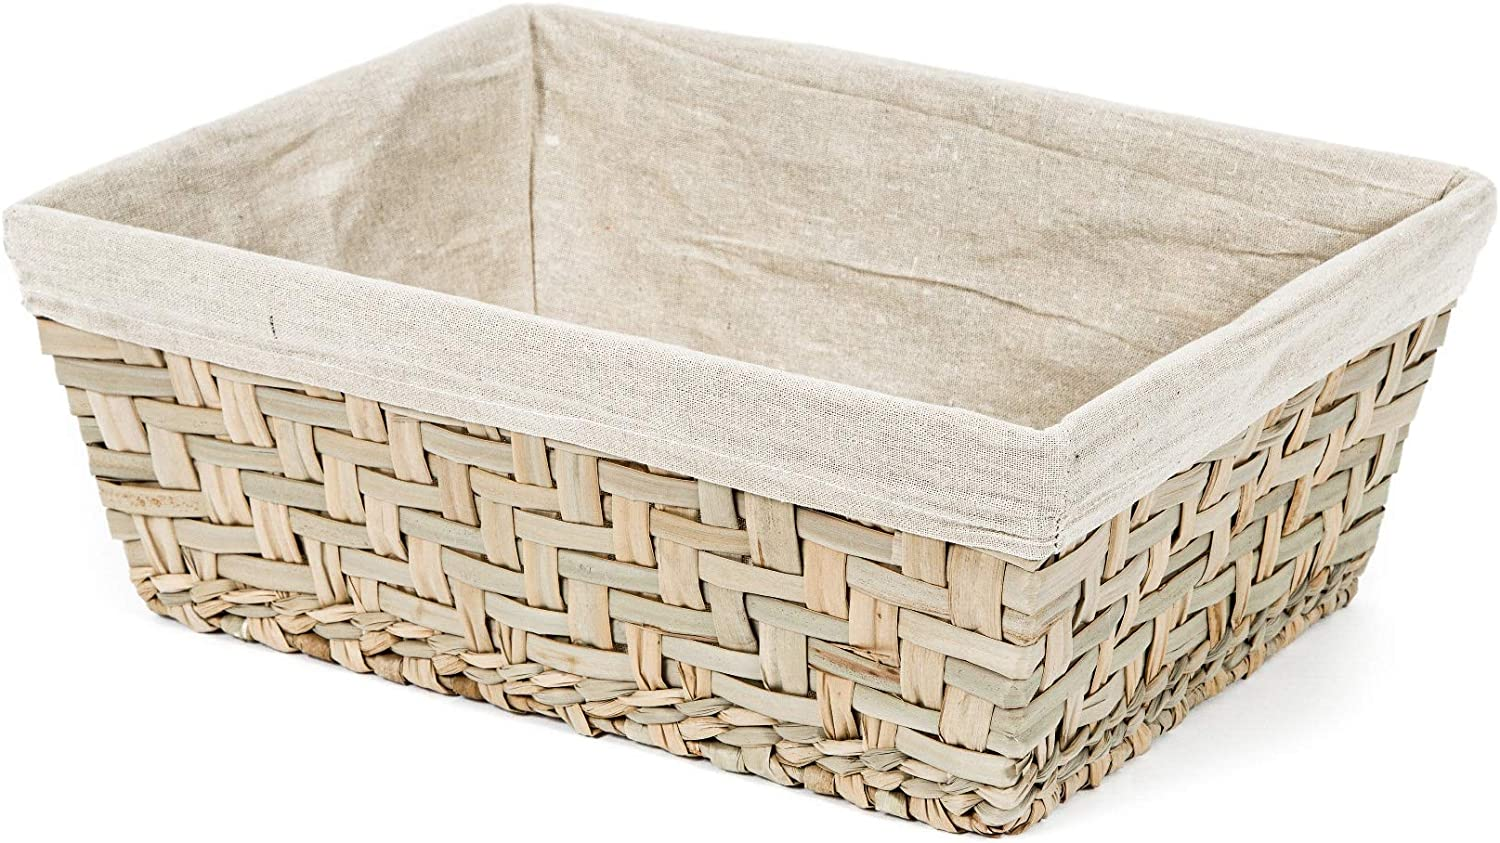 Compactor Fiesta Bombing new Fashionable work Basket Natural Large